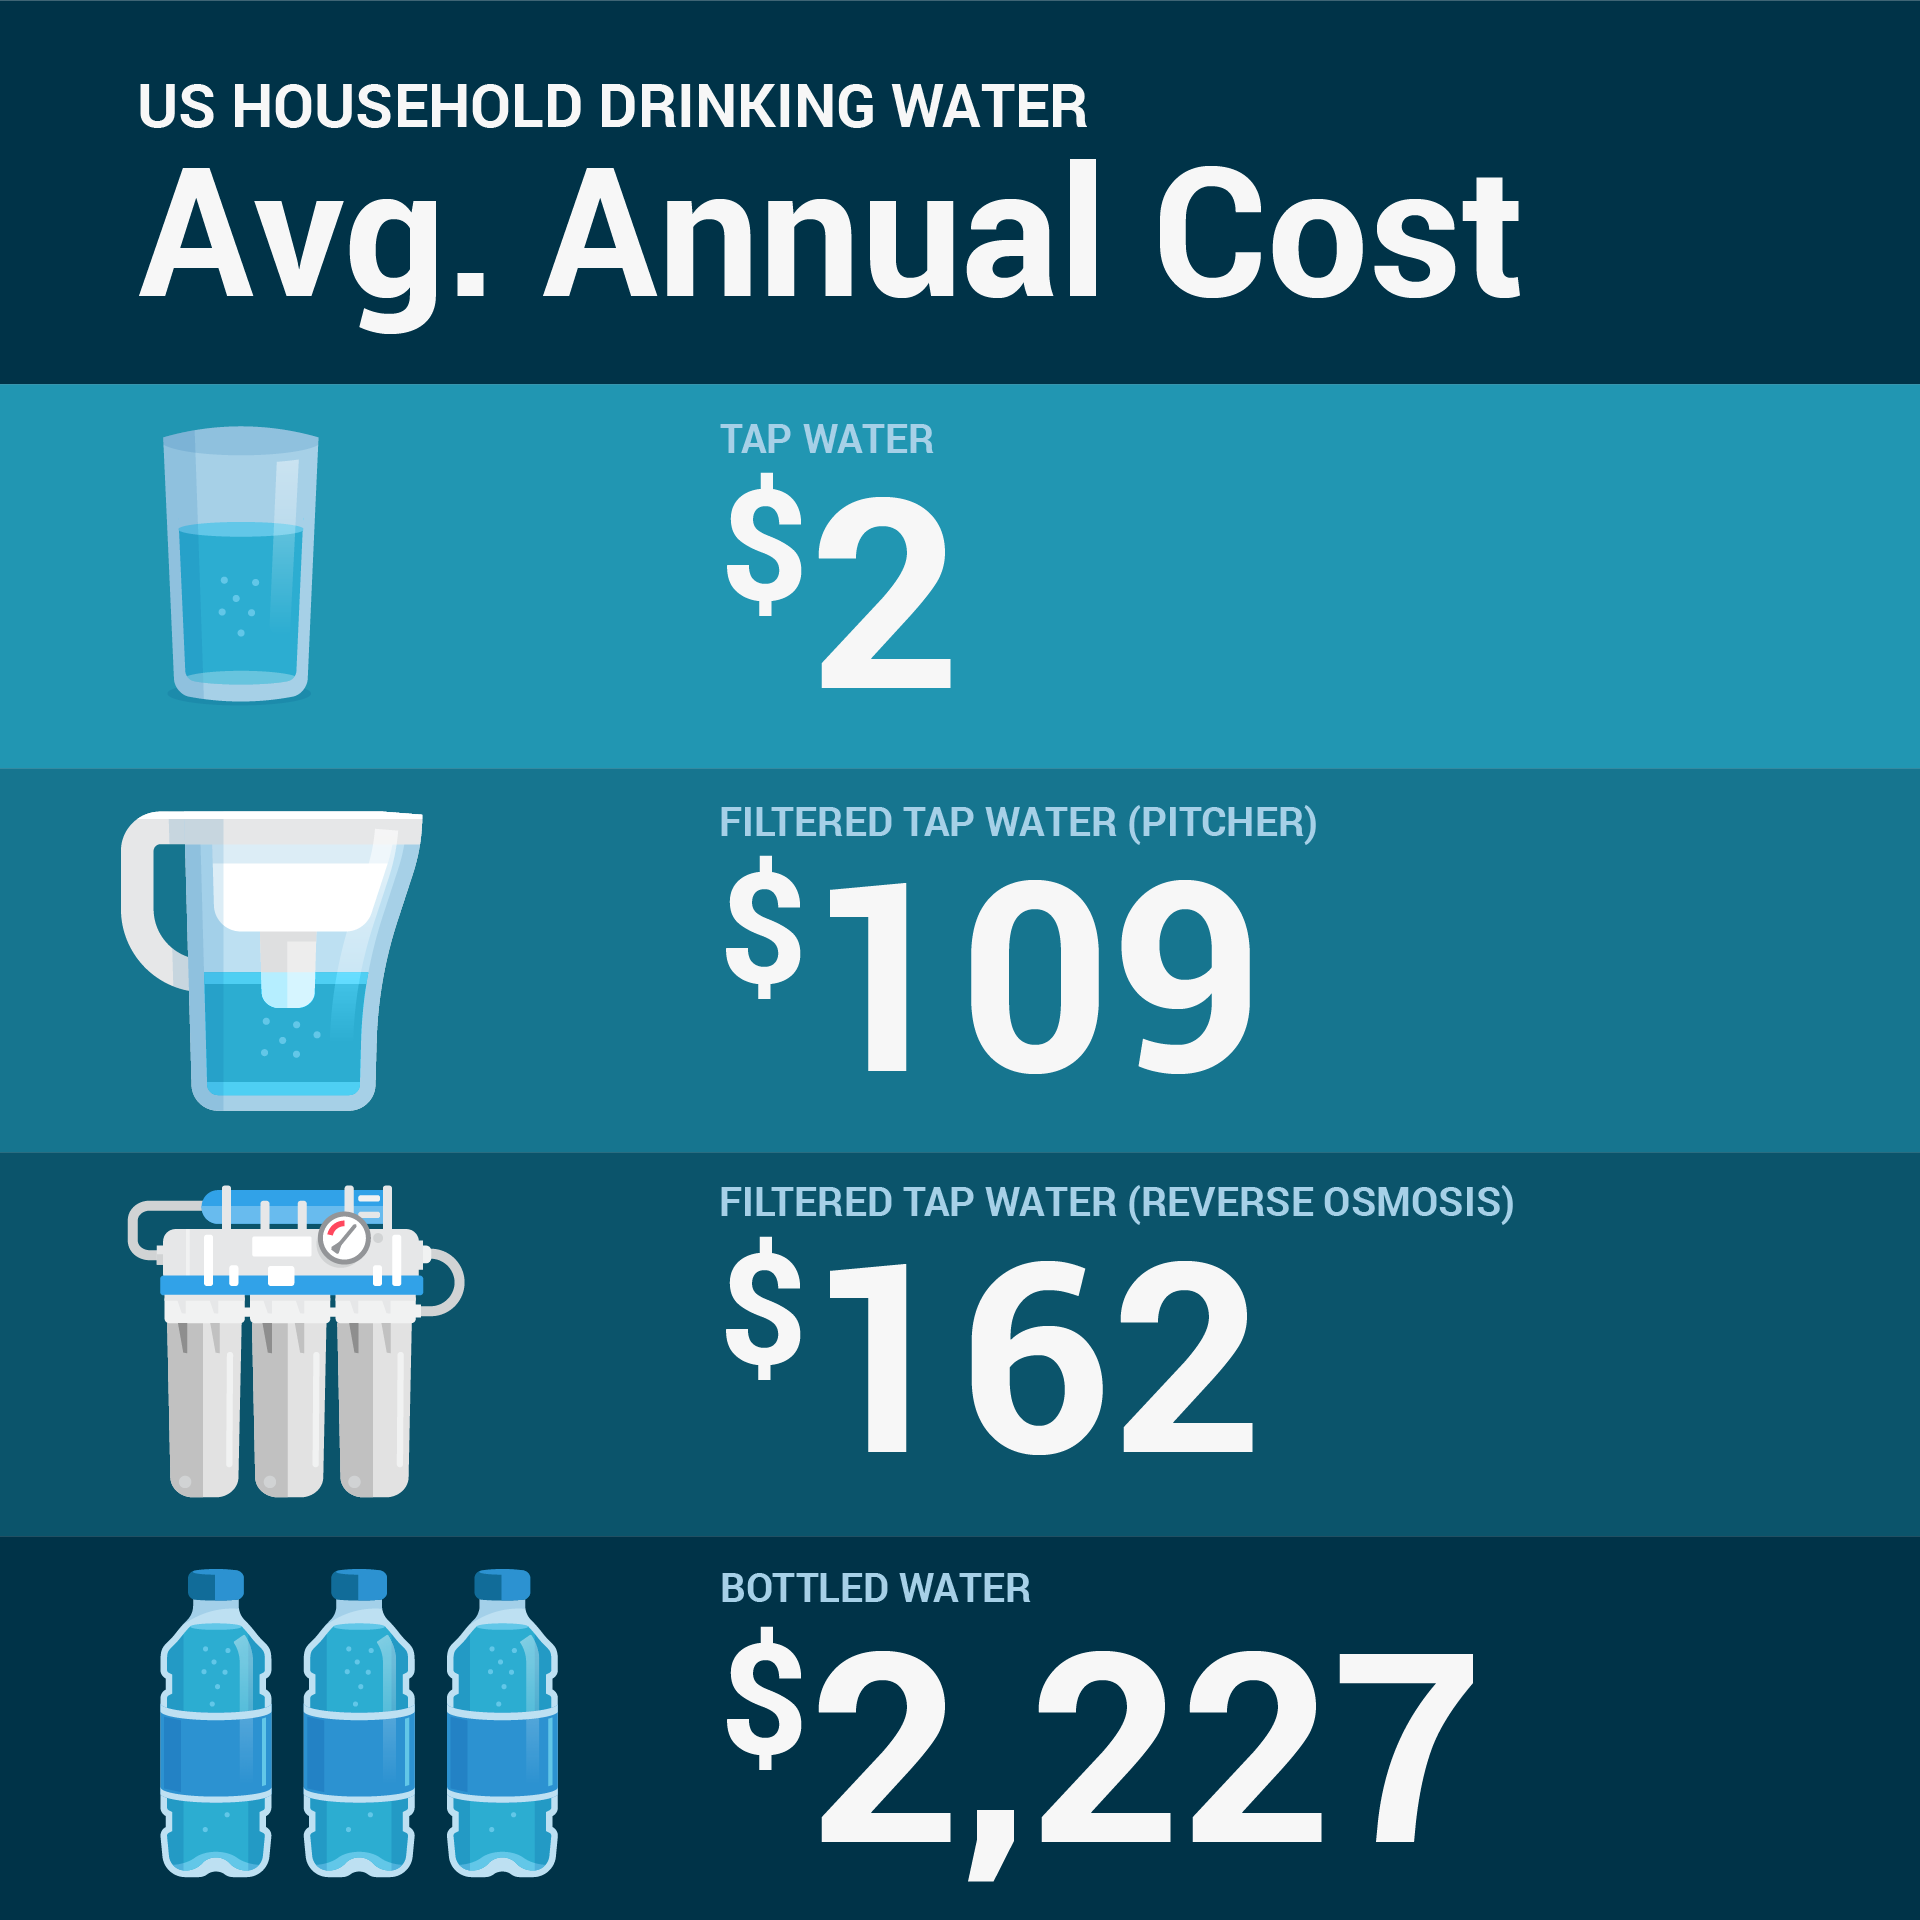 Annual cost of water